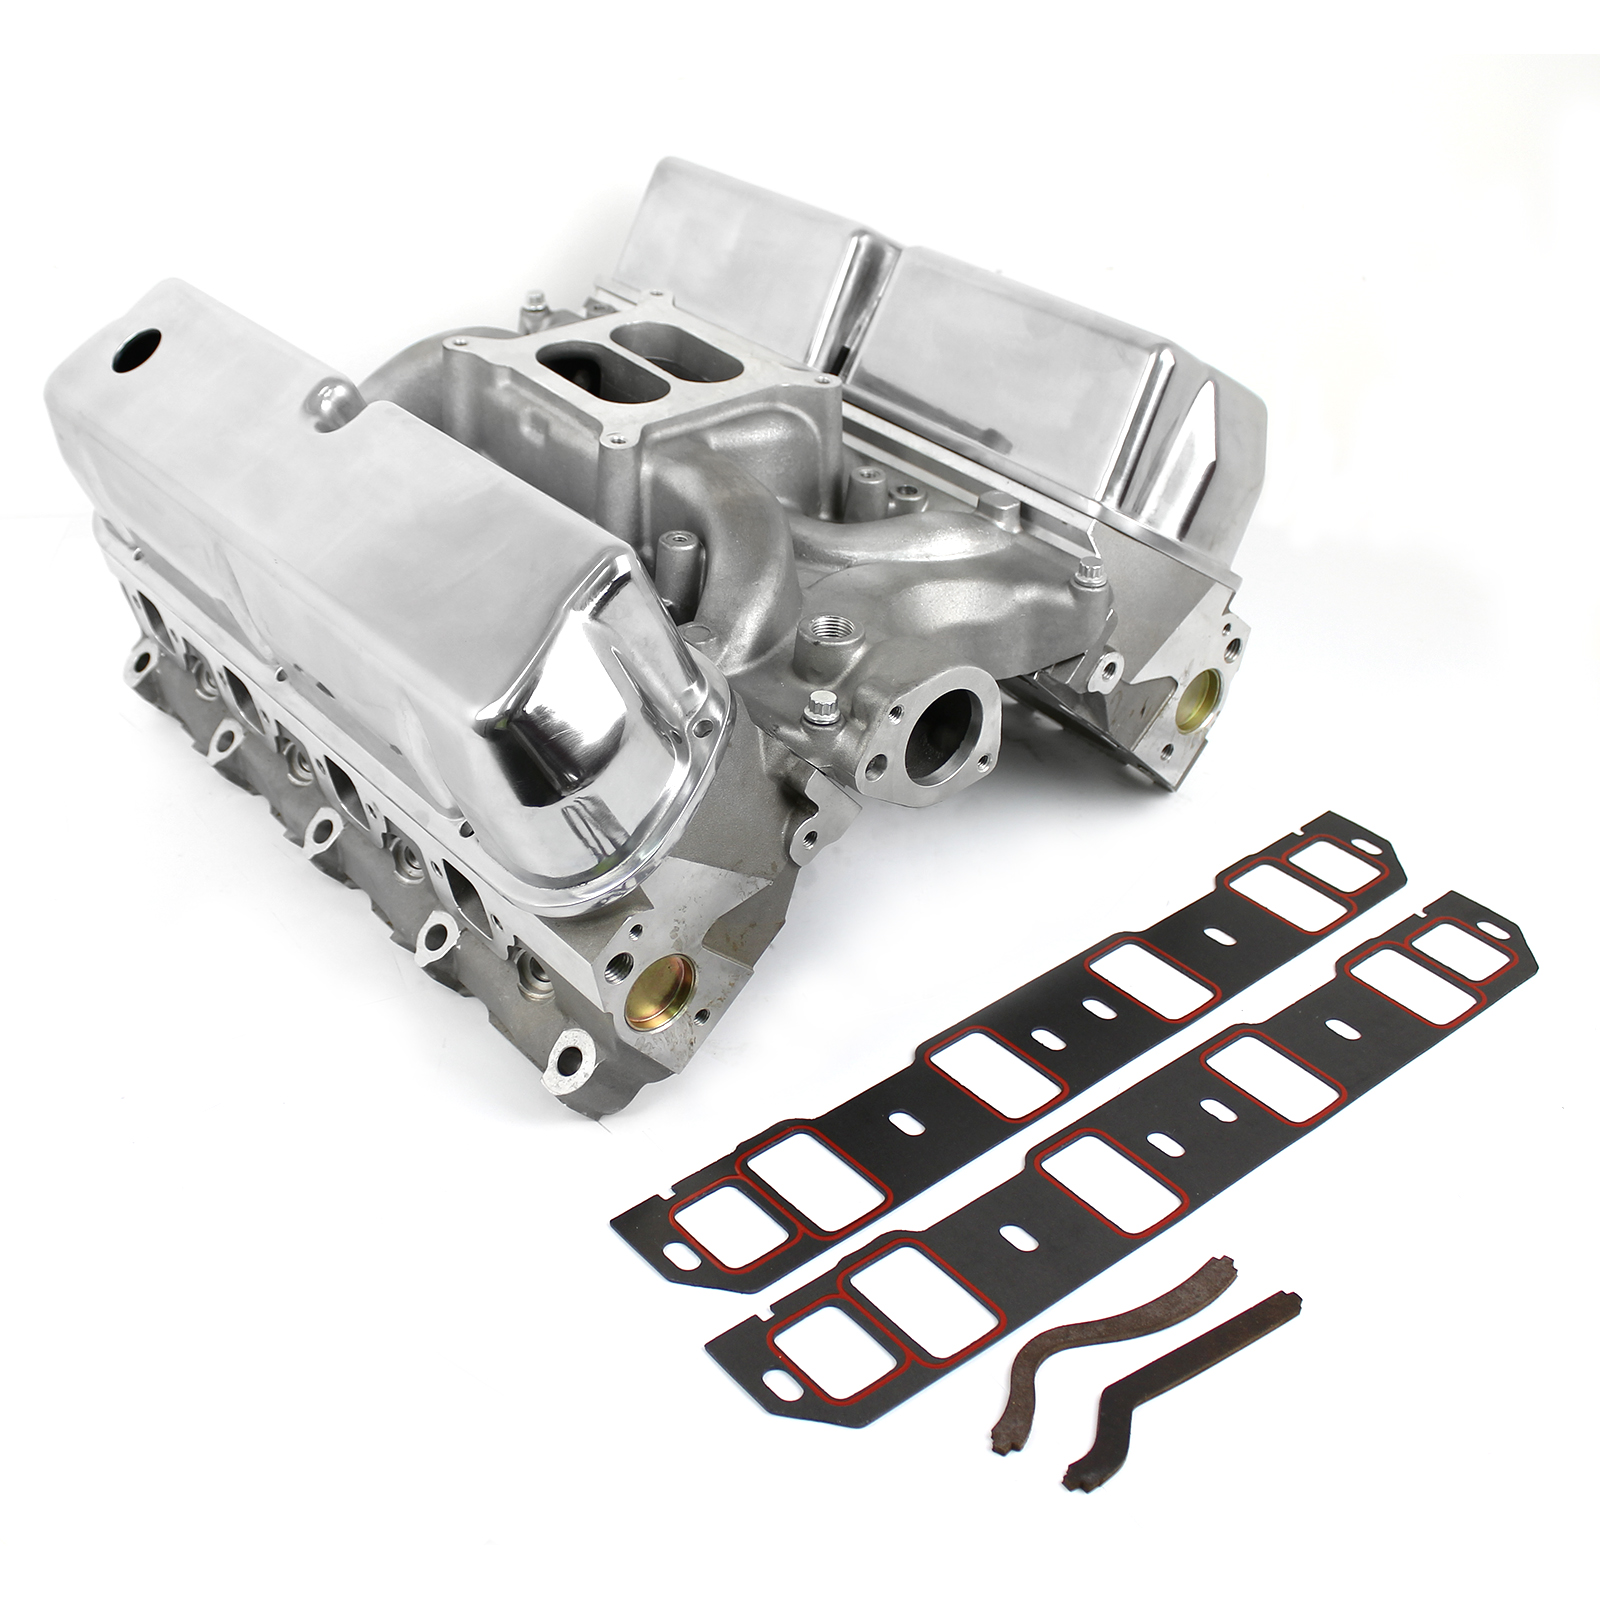 PCE® PCE435.1064 Ford SB 289 302 Windsor Hyd FT Cylinder Head Top End Engine Combo Kit